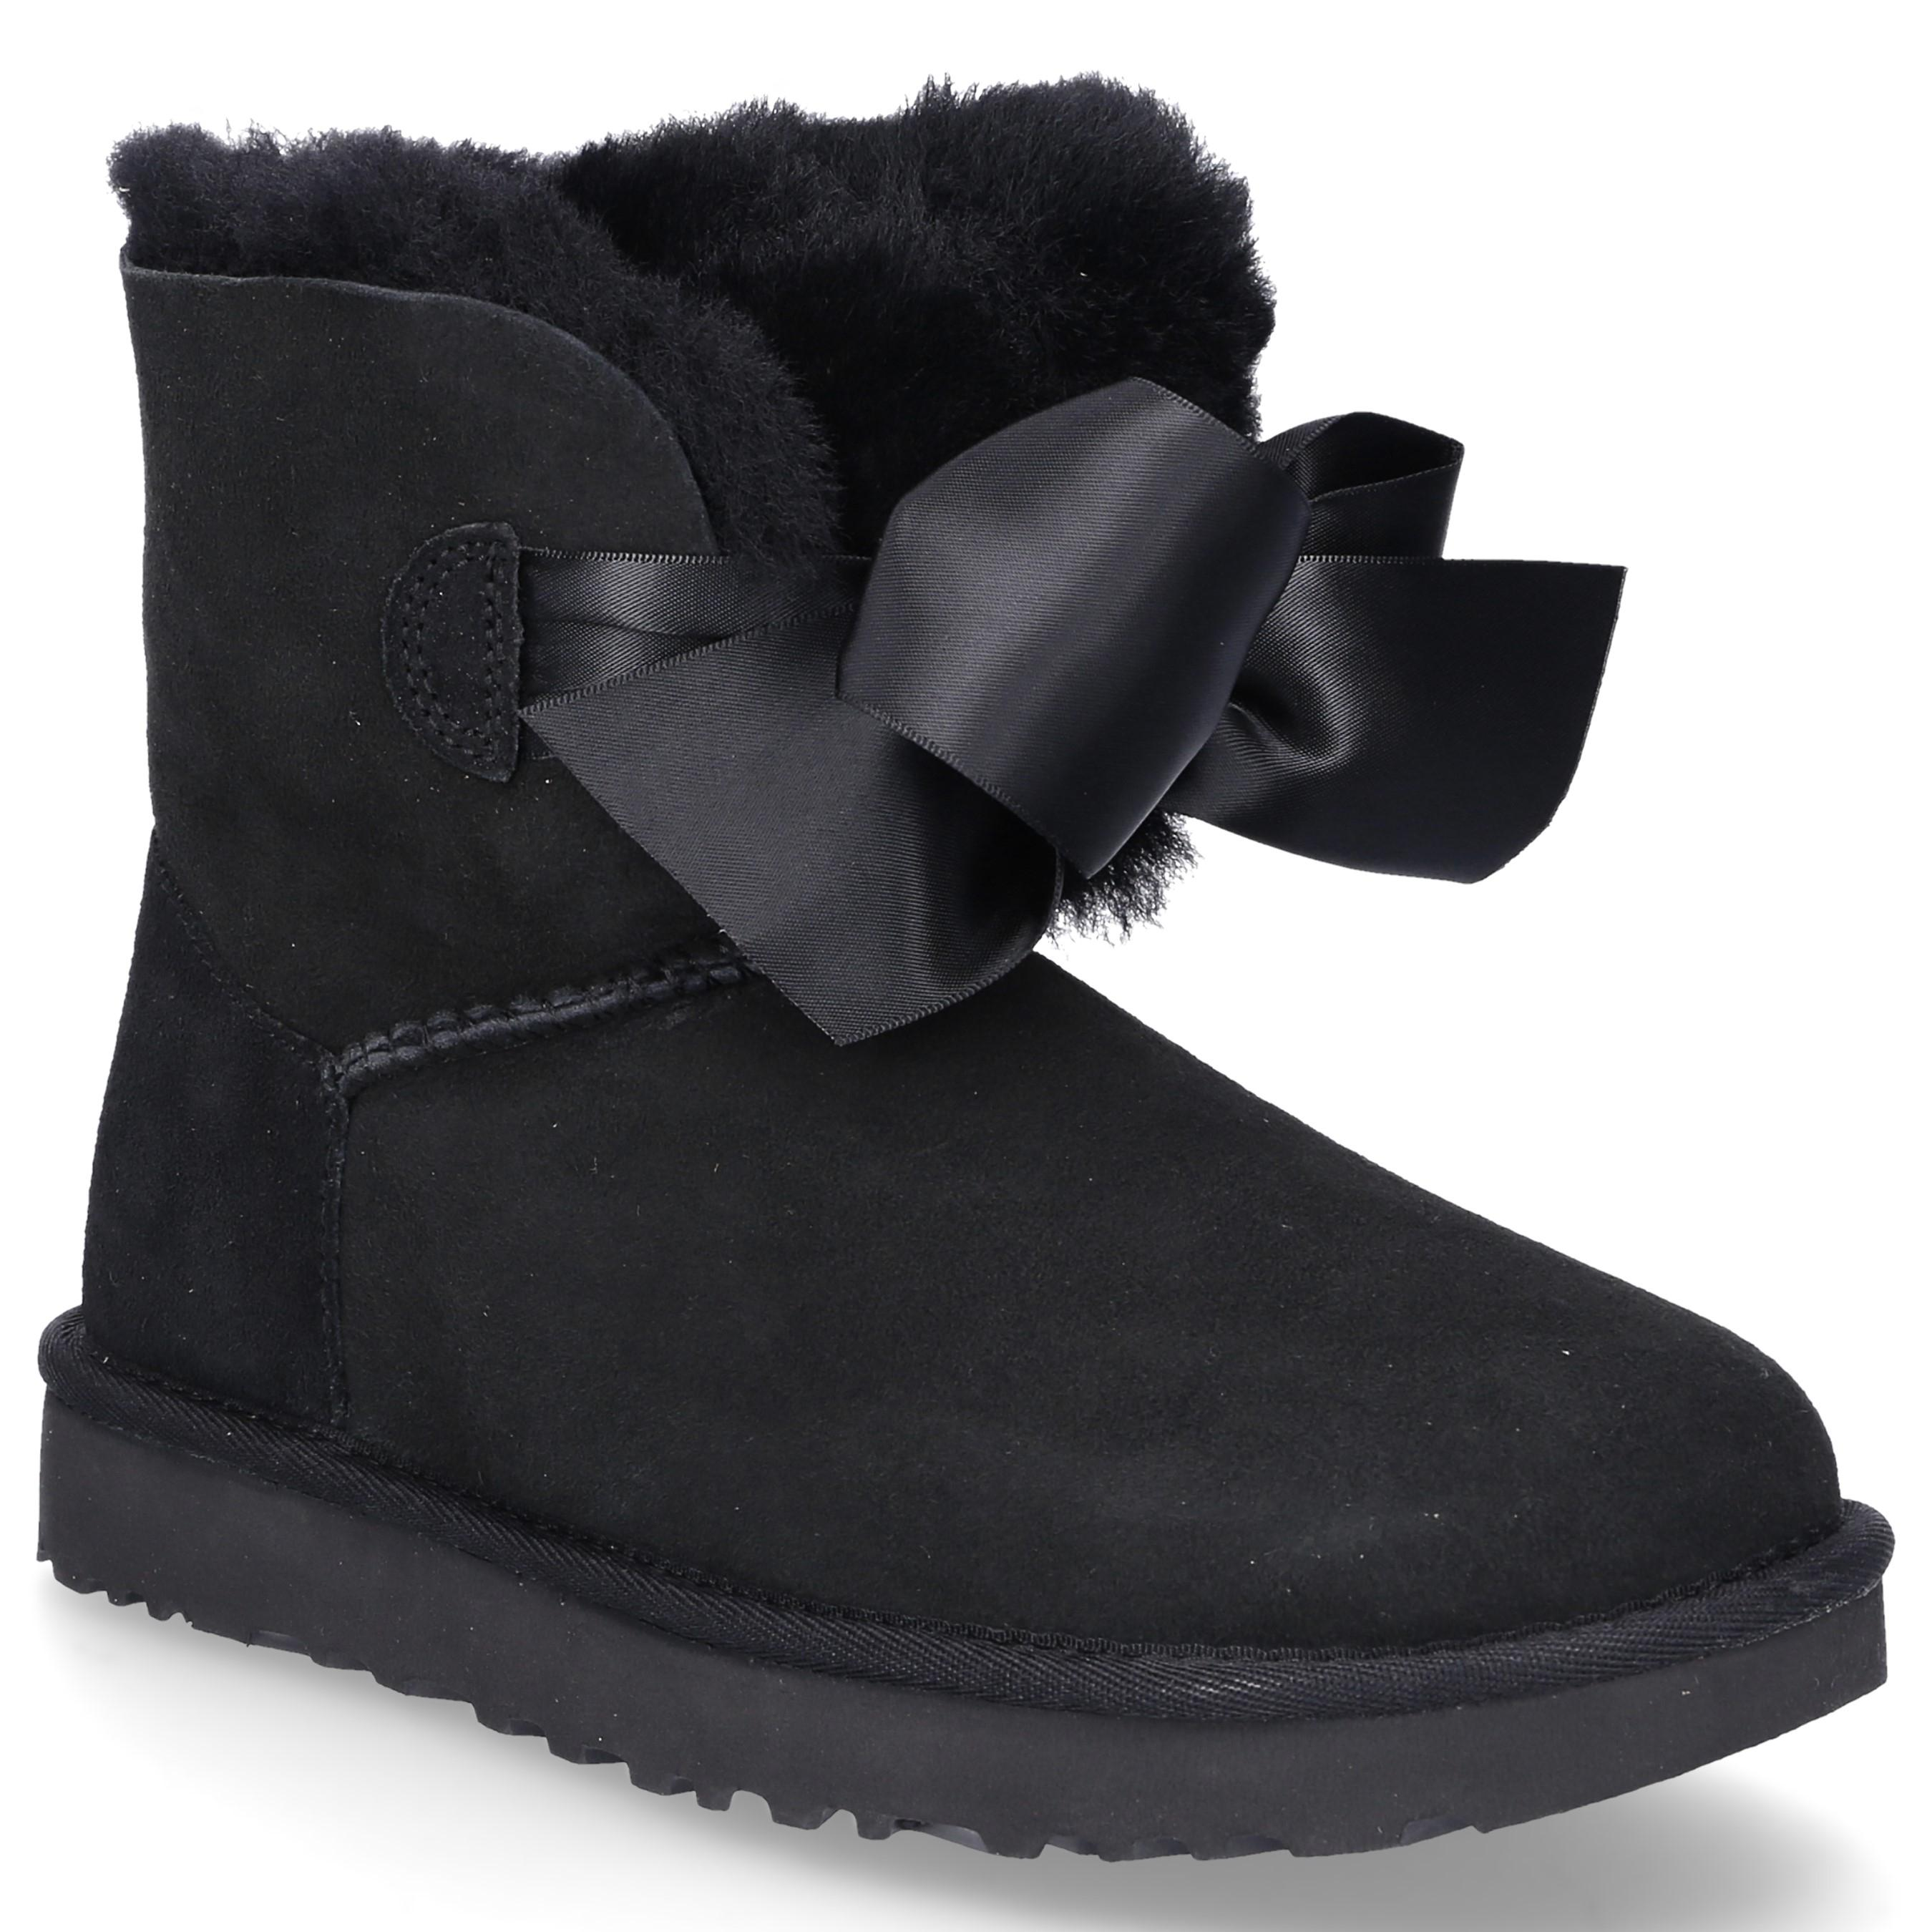 dc13b768bf4 UGG Ankle Boots Black Gita Bow in Black - Lyst